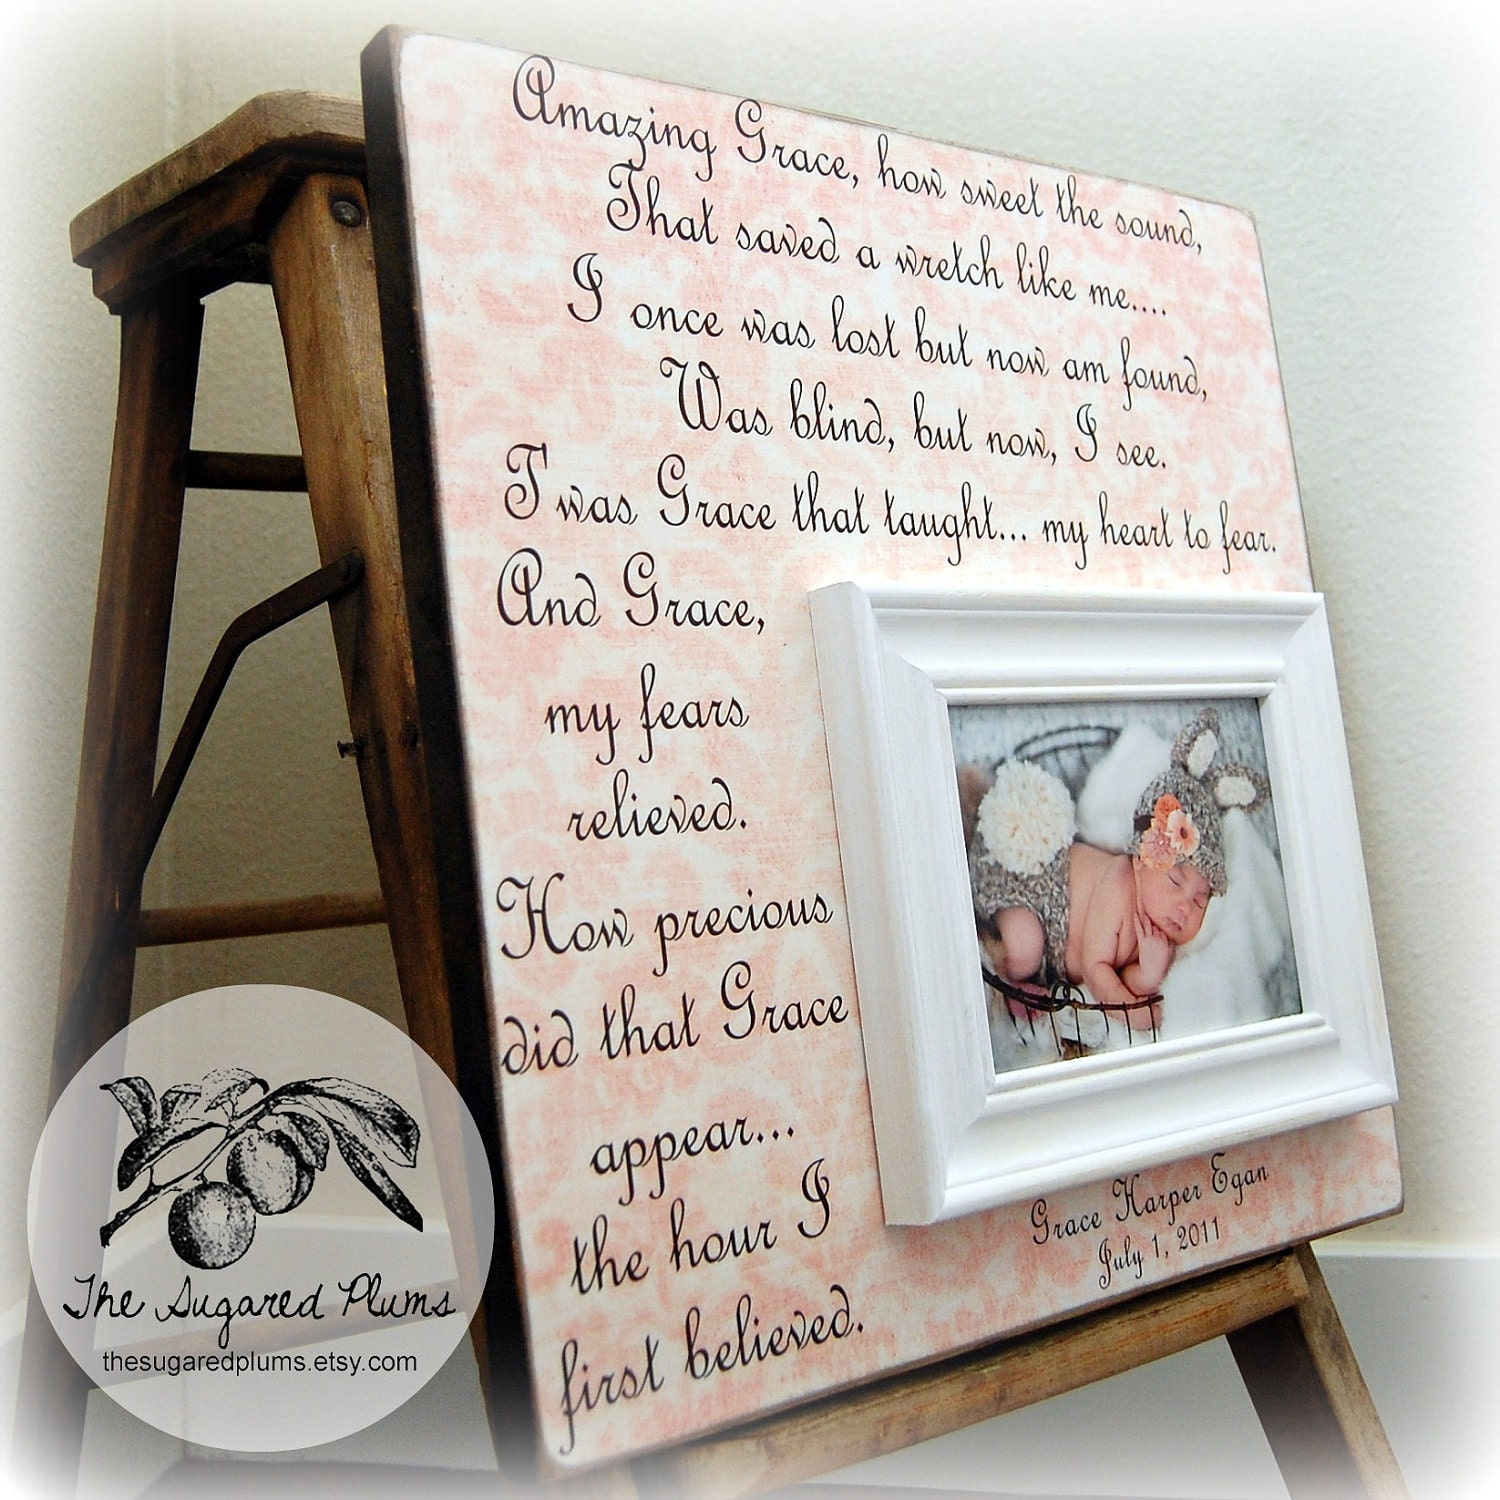 Wedding Gift Ideas For Sister From Brother : ... Amazing Grace, birthday gift, siblings, brother, sister, quote, poem